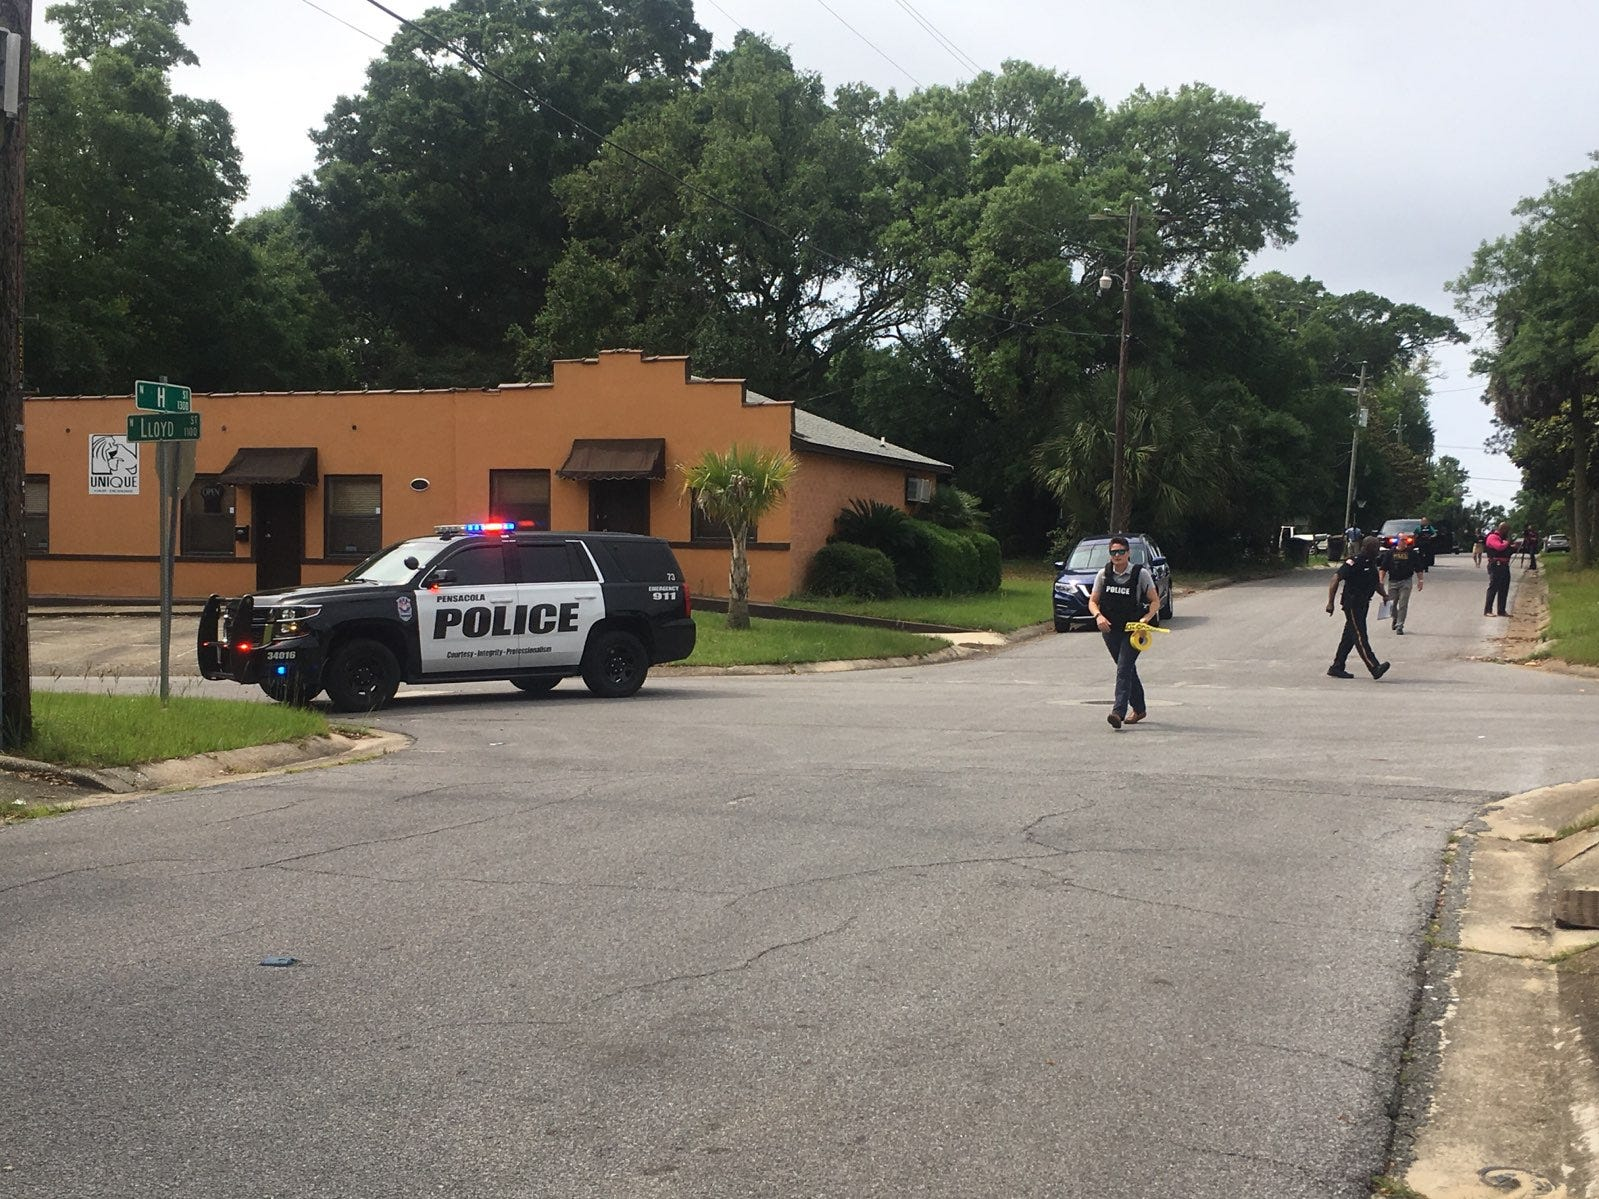 Pensacola Police respond to a call about shots fired at a residence near the corner of Lloyd Street and G Street as of 9:50 a.m. Friday, May 10, 2019.